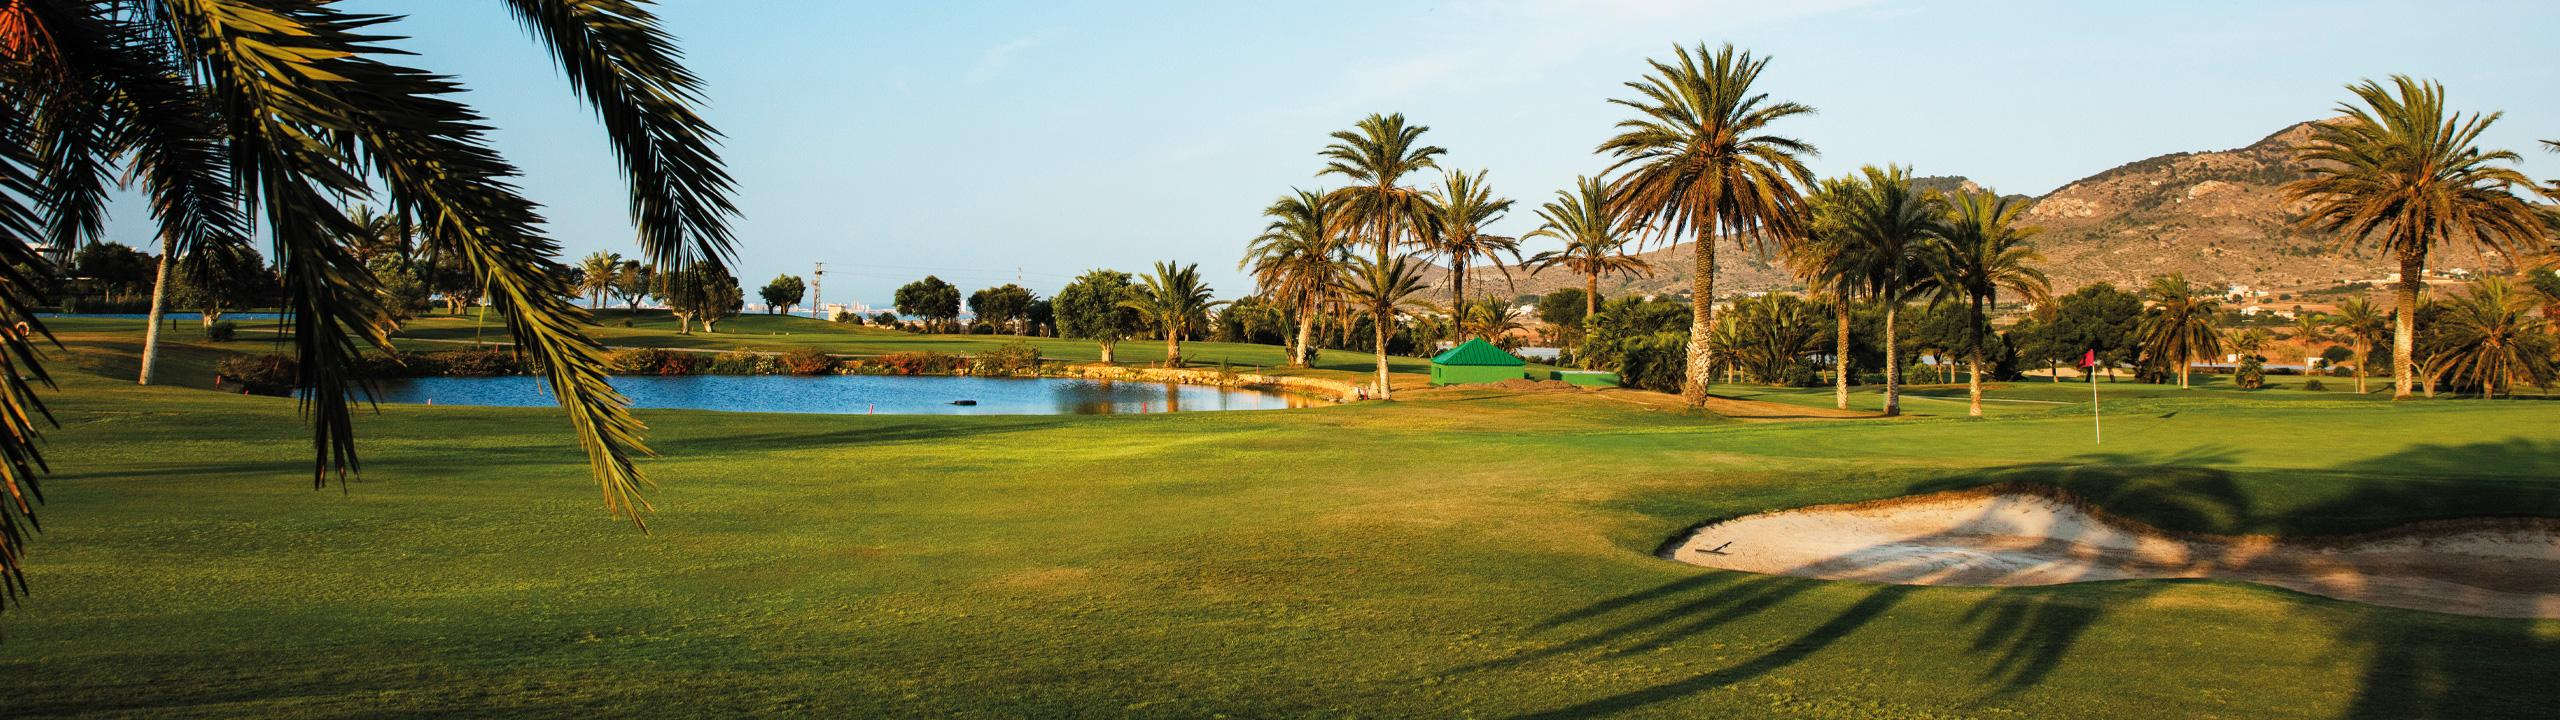 La Manga Club - Golf - North Course